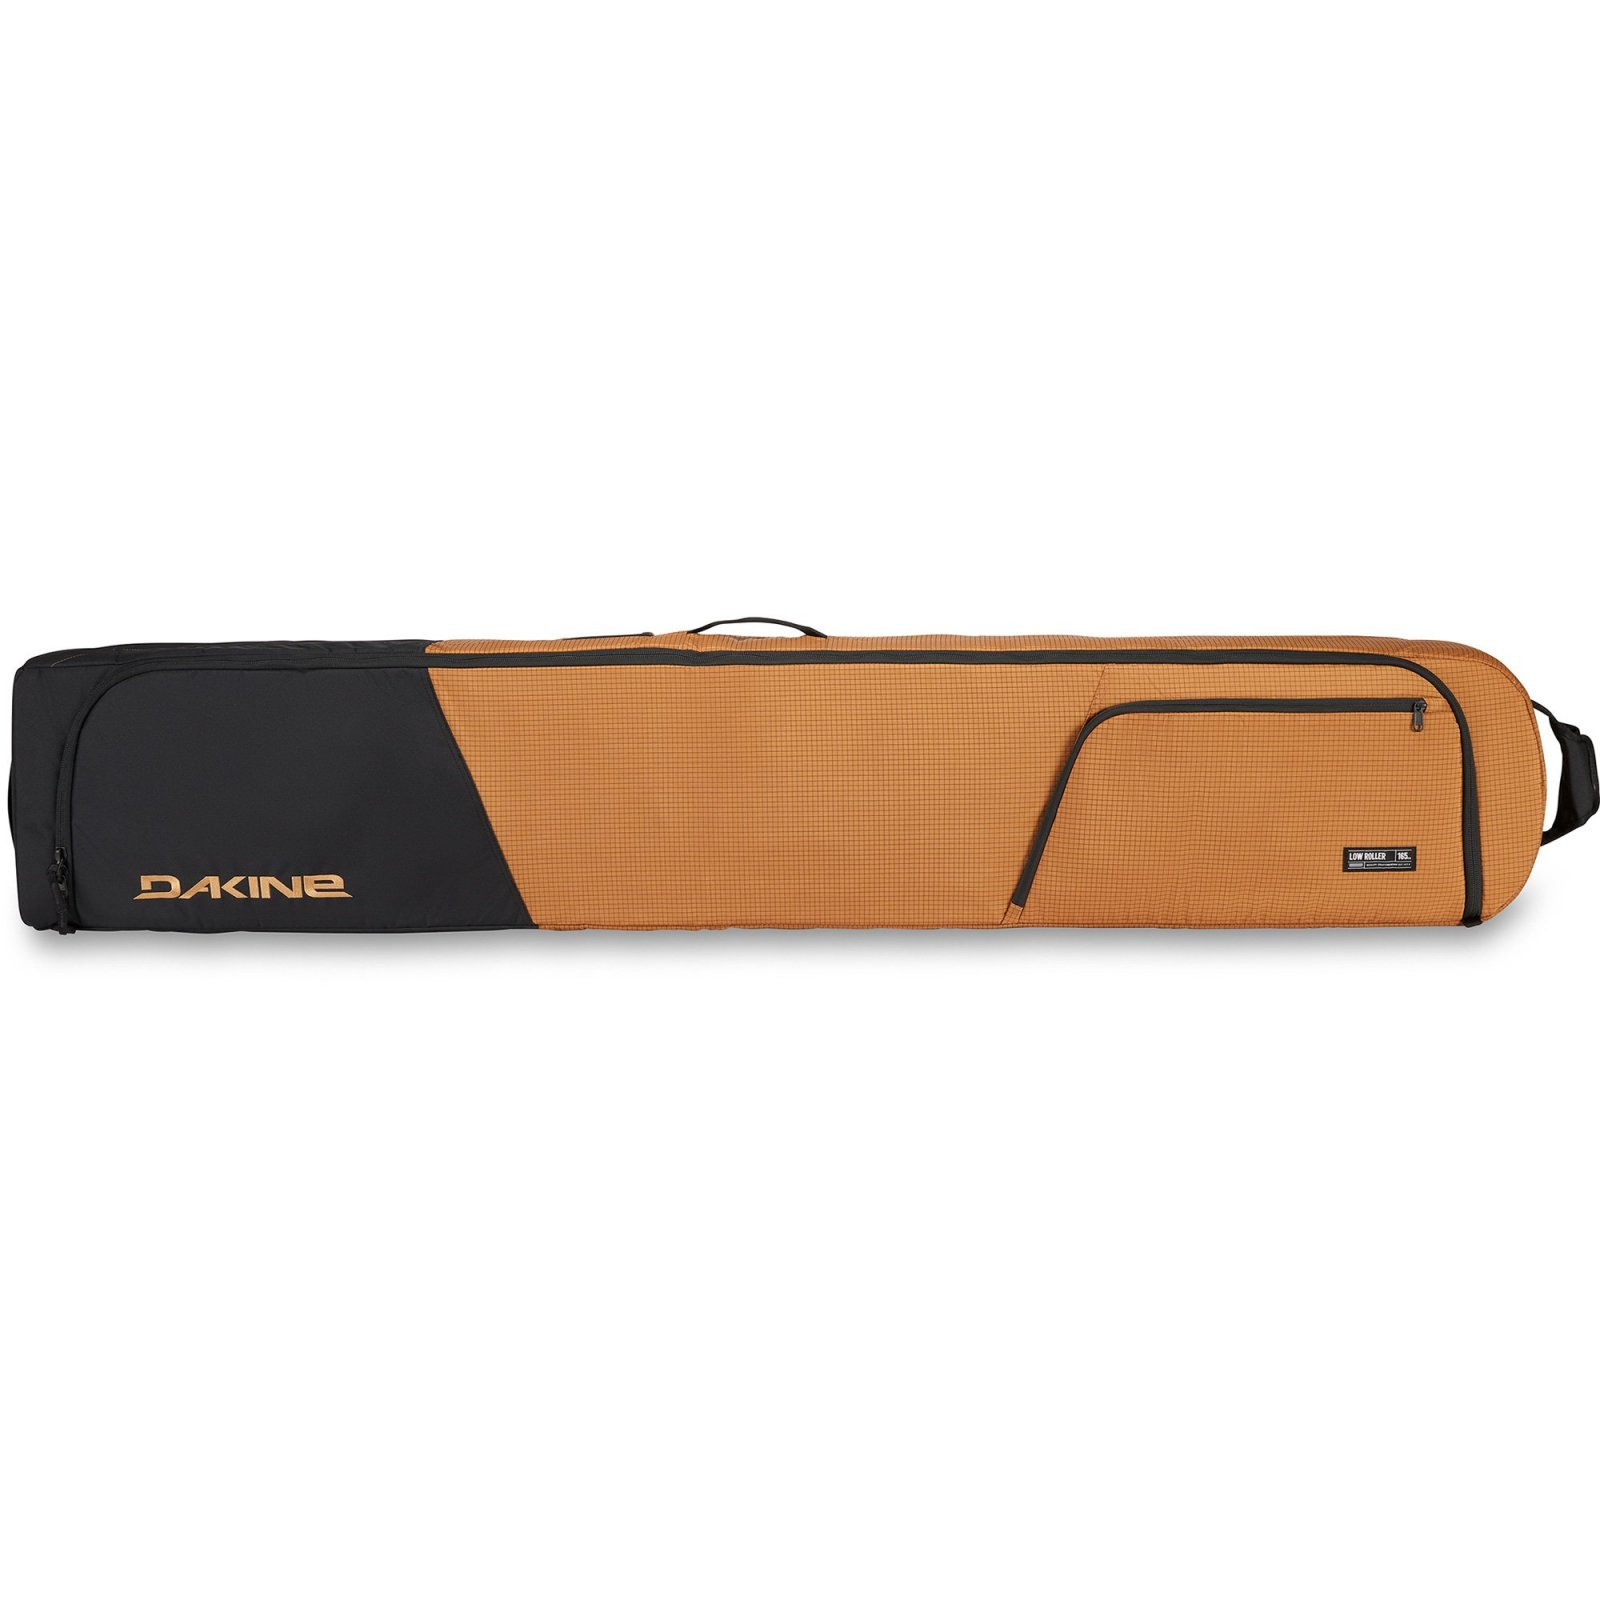 Dakine Low Roller Snowboard Bag (Multiple Color and Size Options)